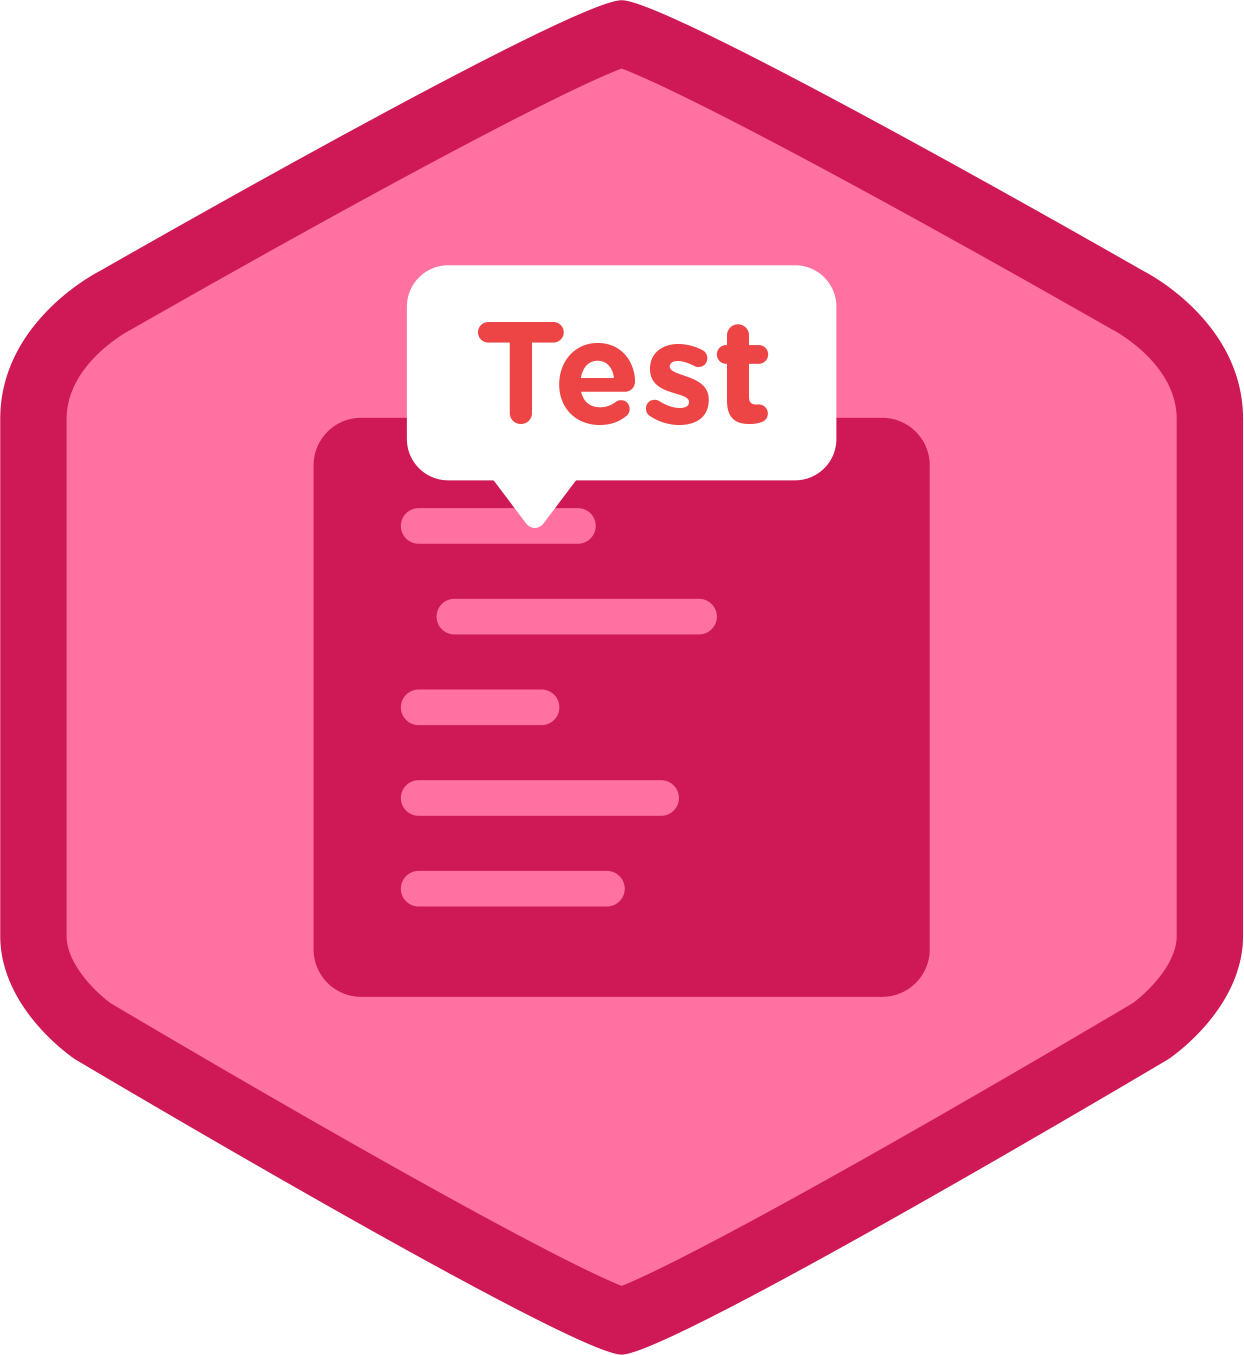 Unit Testing In C# Course